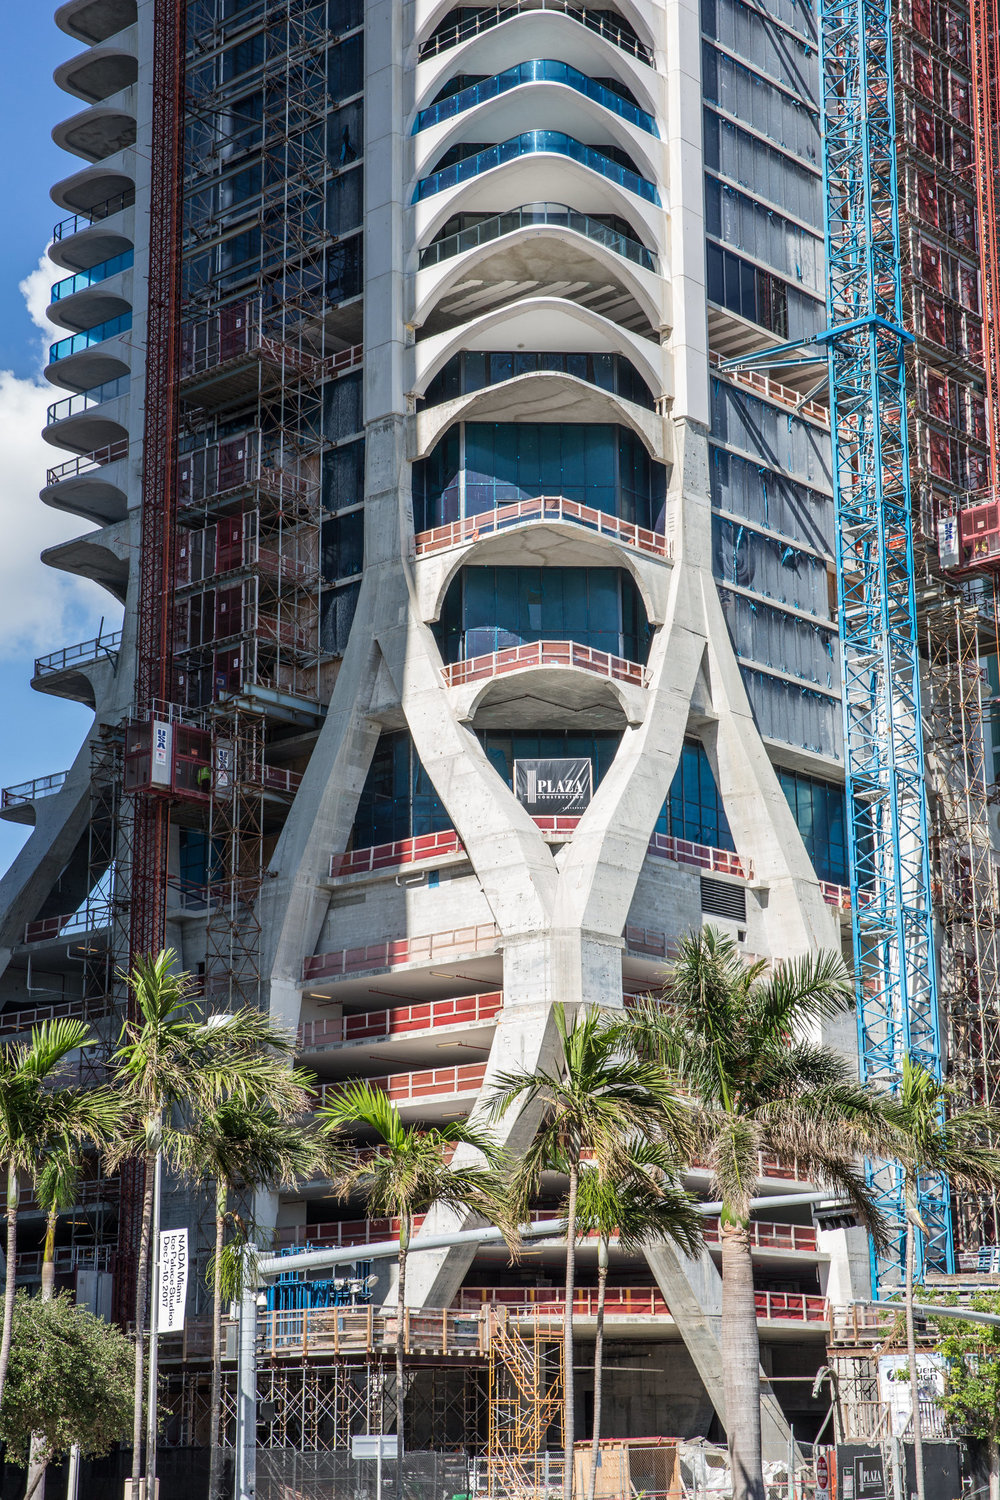 Zaha Hadid's Futuristic One Thousand Museum Tops Off On Museum Park in Downtown Miami